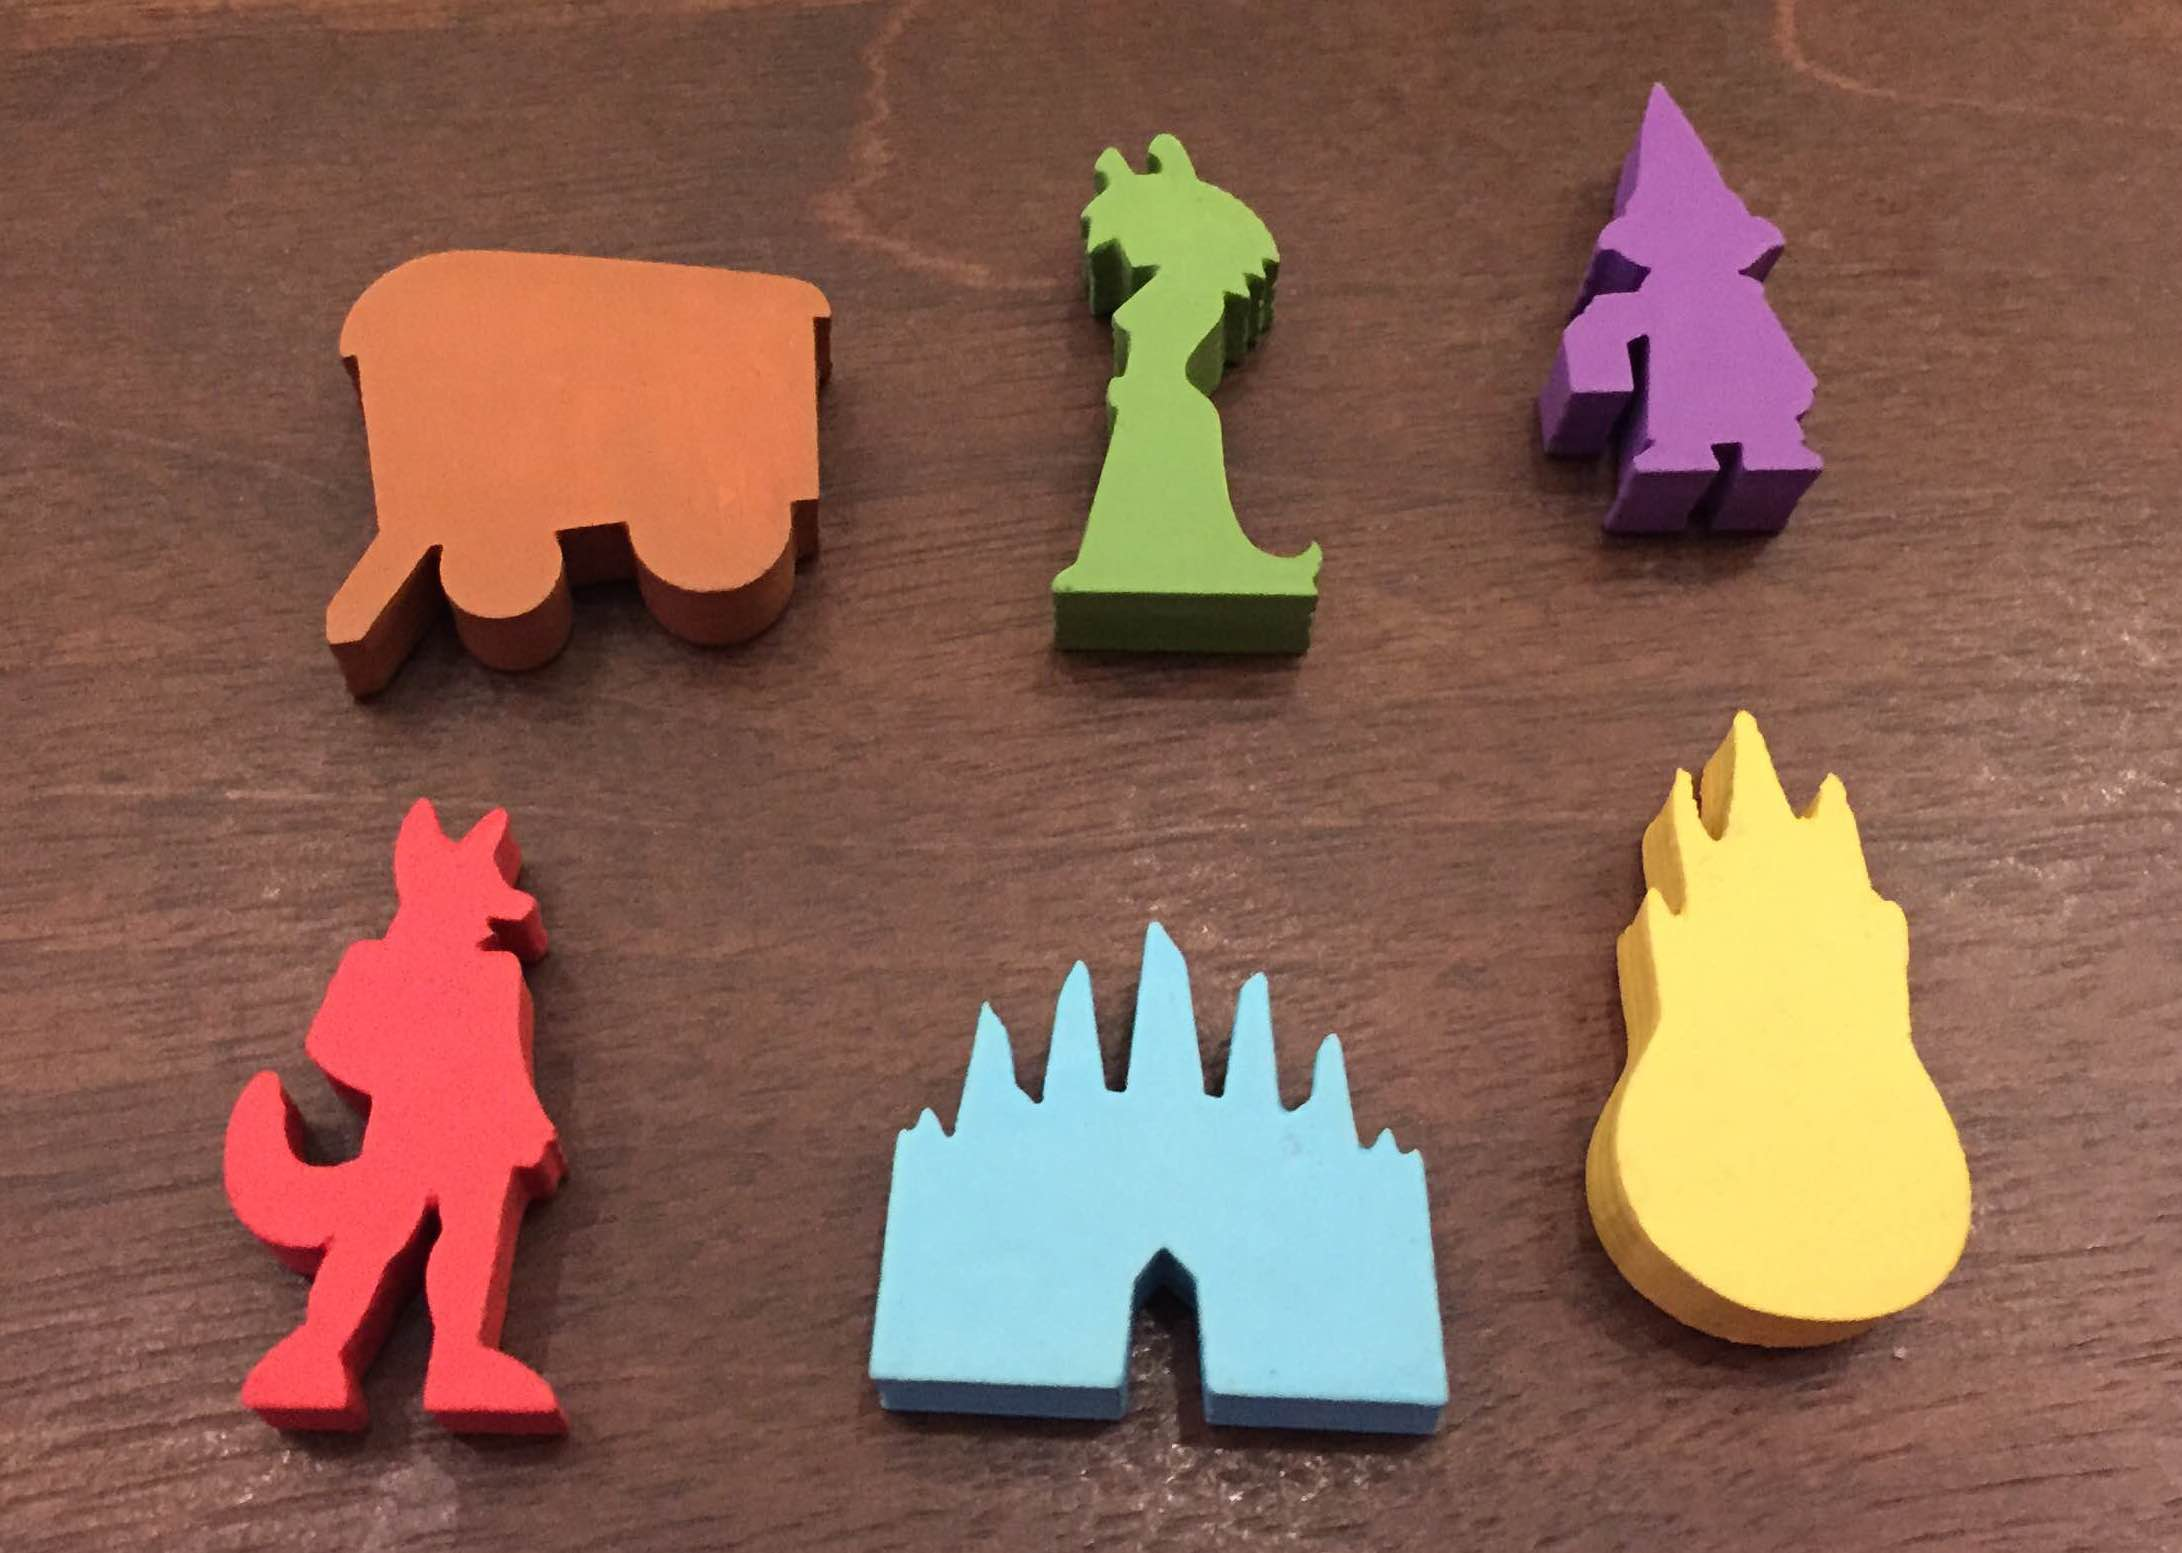 Custom Meeples from the game